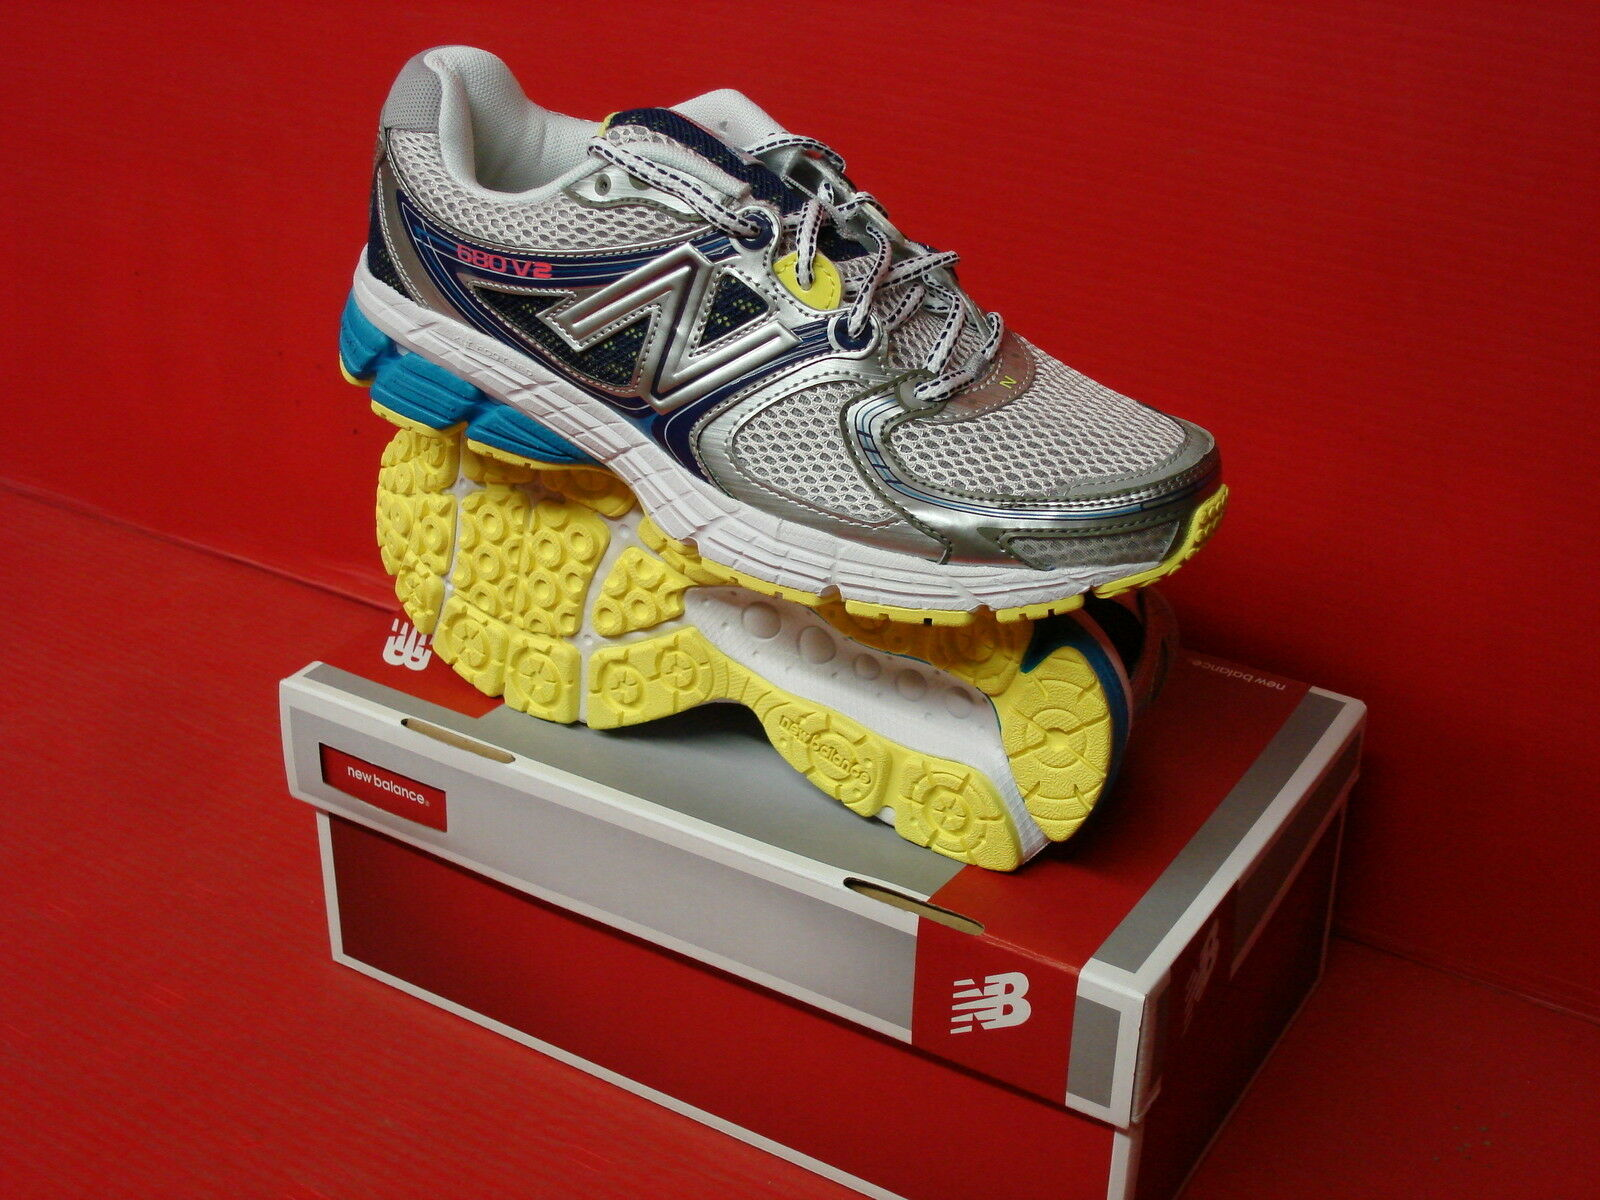 NEW BALANCE 680 680 680 Damenschuhe RUNNING W680 645232